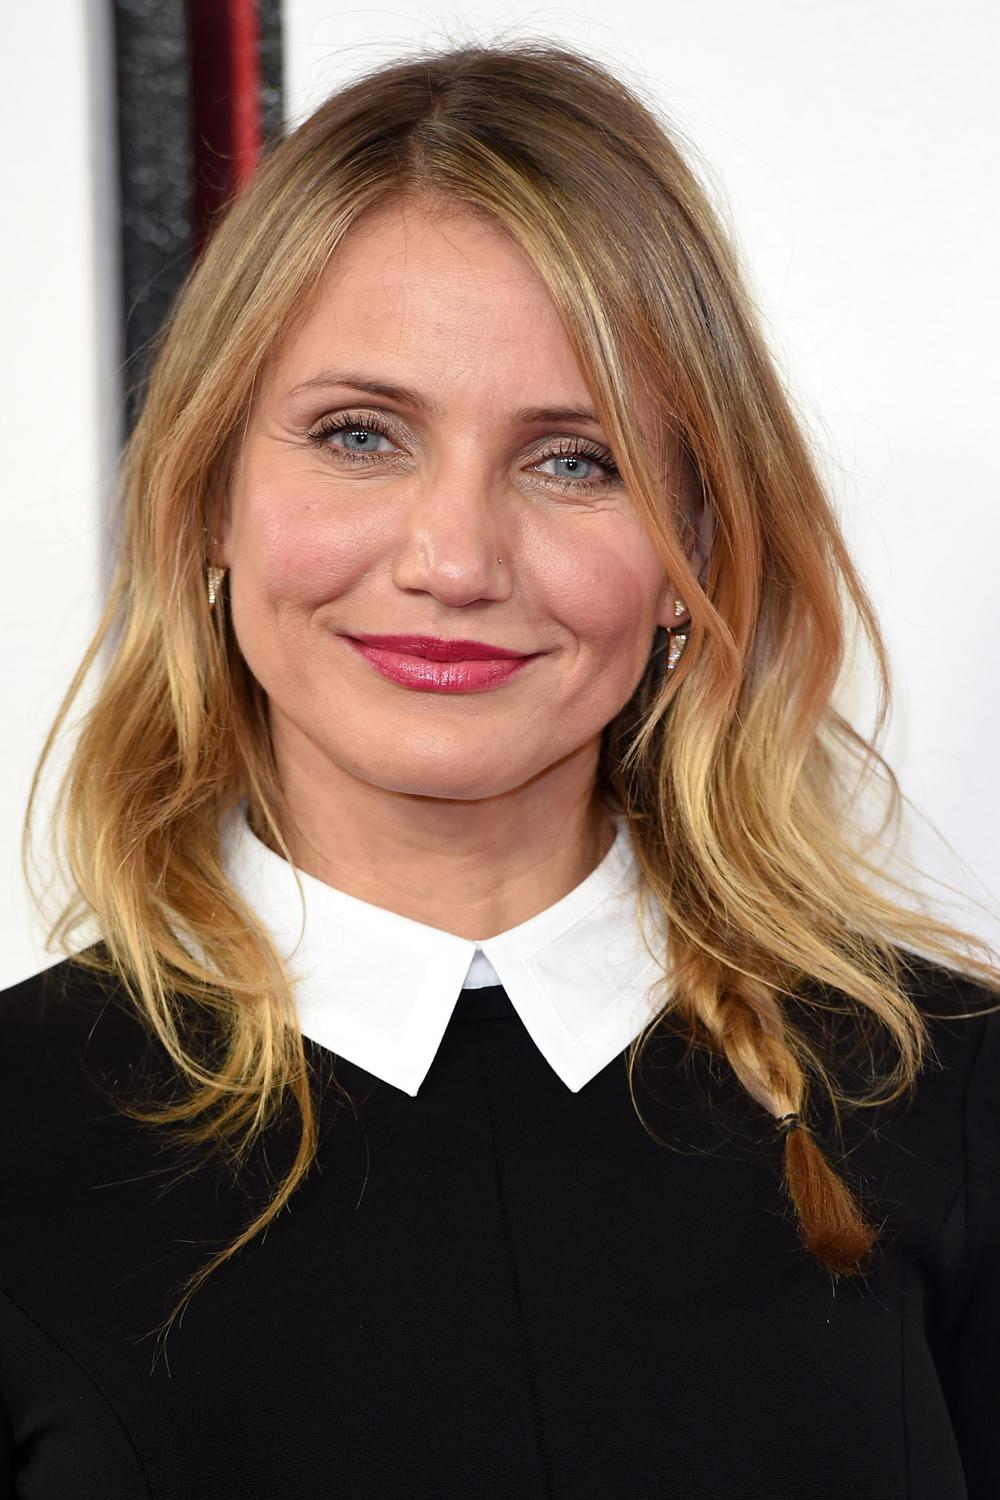 cameron diaz pourrait tre enceinte de son premier enfant 45 ans madame figaro. Black Bedroom Furniture Sets. Home Design Ideas